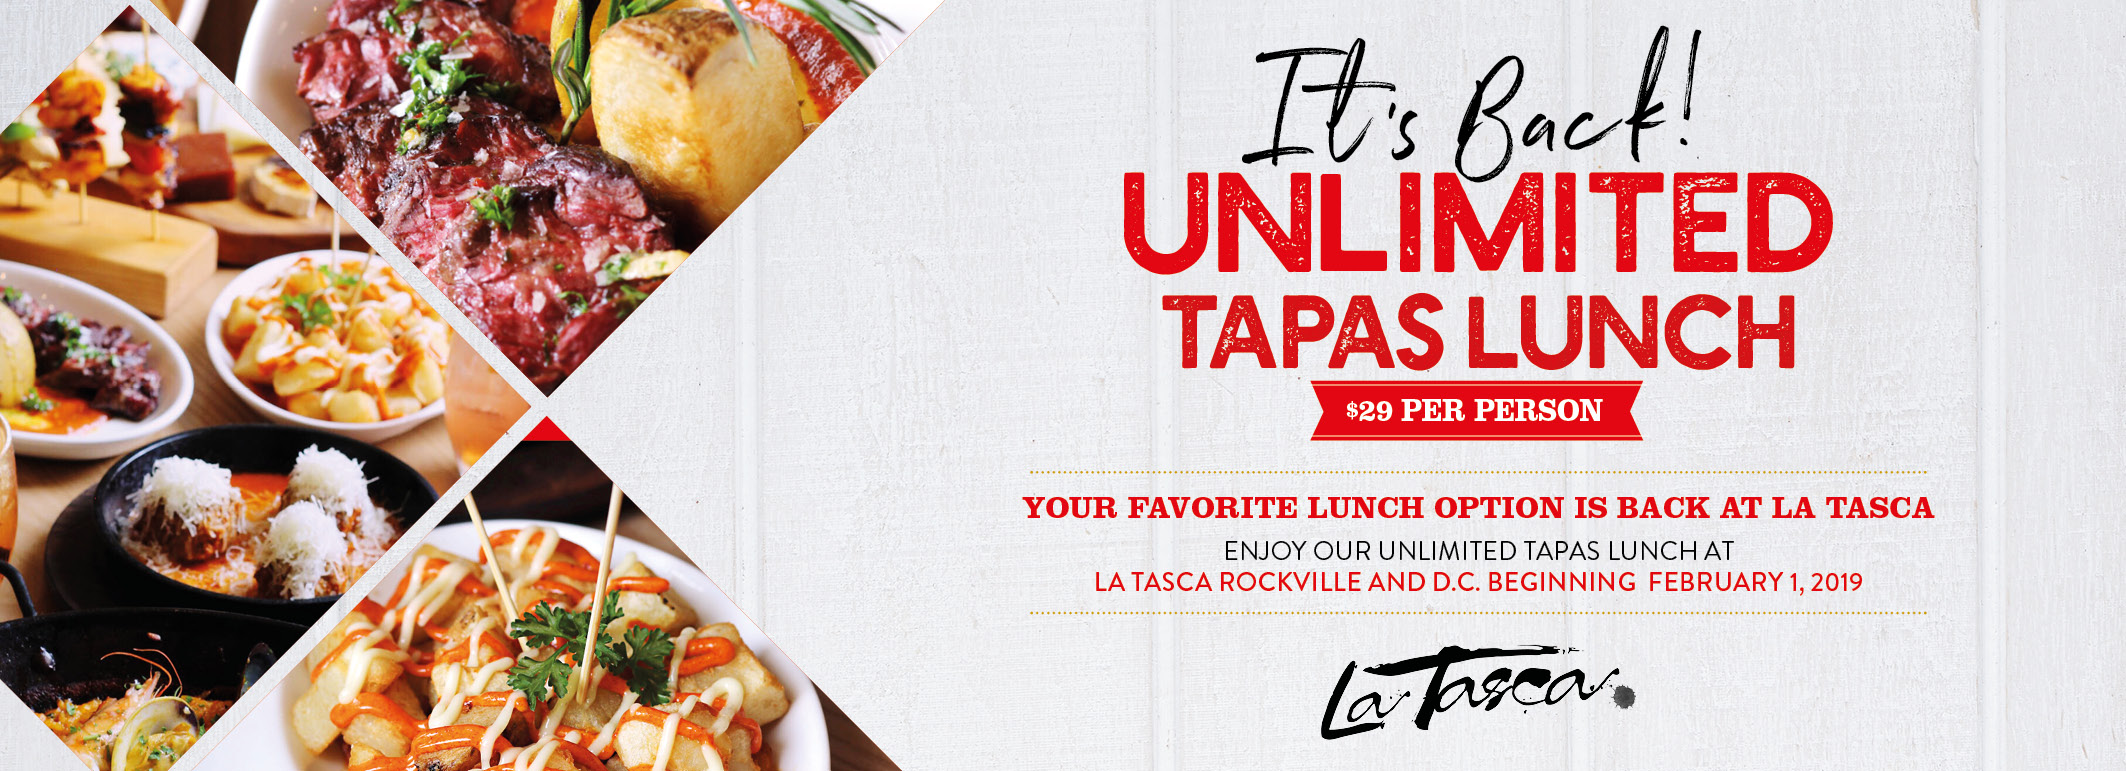 Unlimited_Tapas_WebSlider (2).jpg